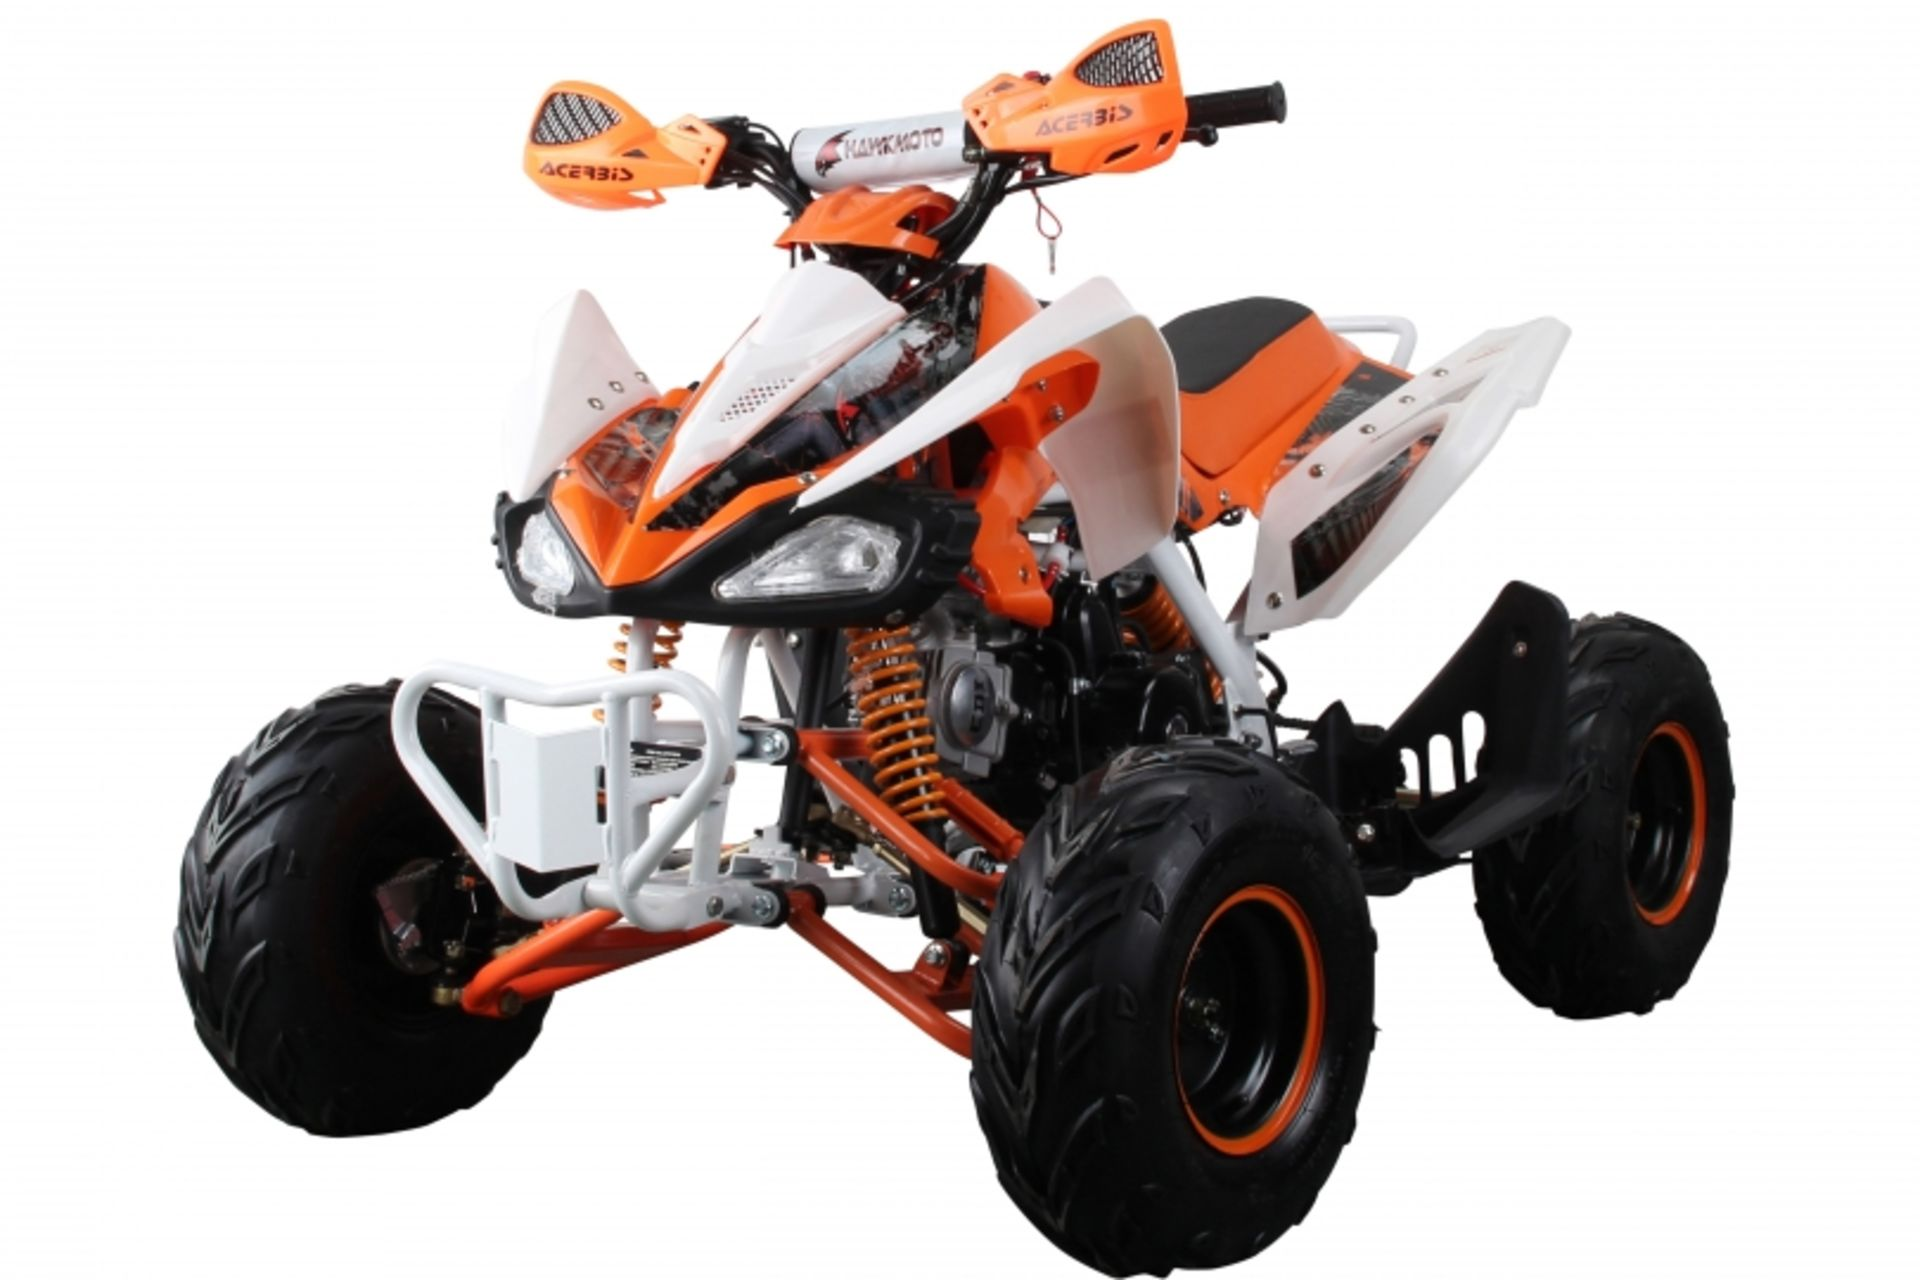 Lot 23020 - V Brand New 125cc Interceptor SV2 4 Stroke Quad Bike With Reverse Gear - Double Front Suspension/